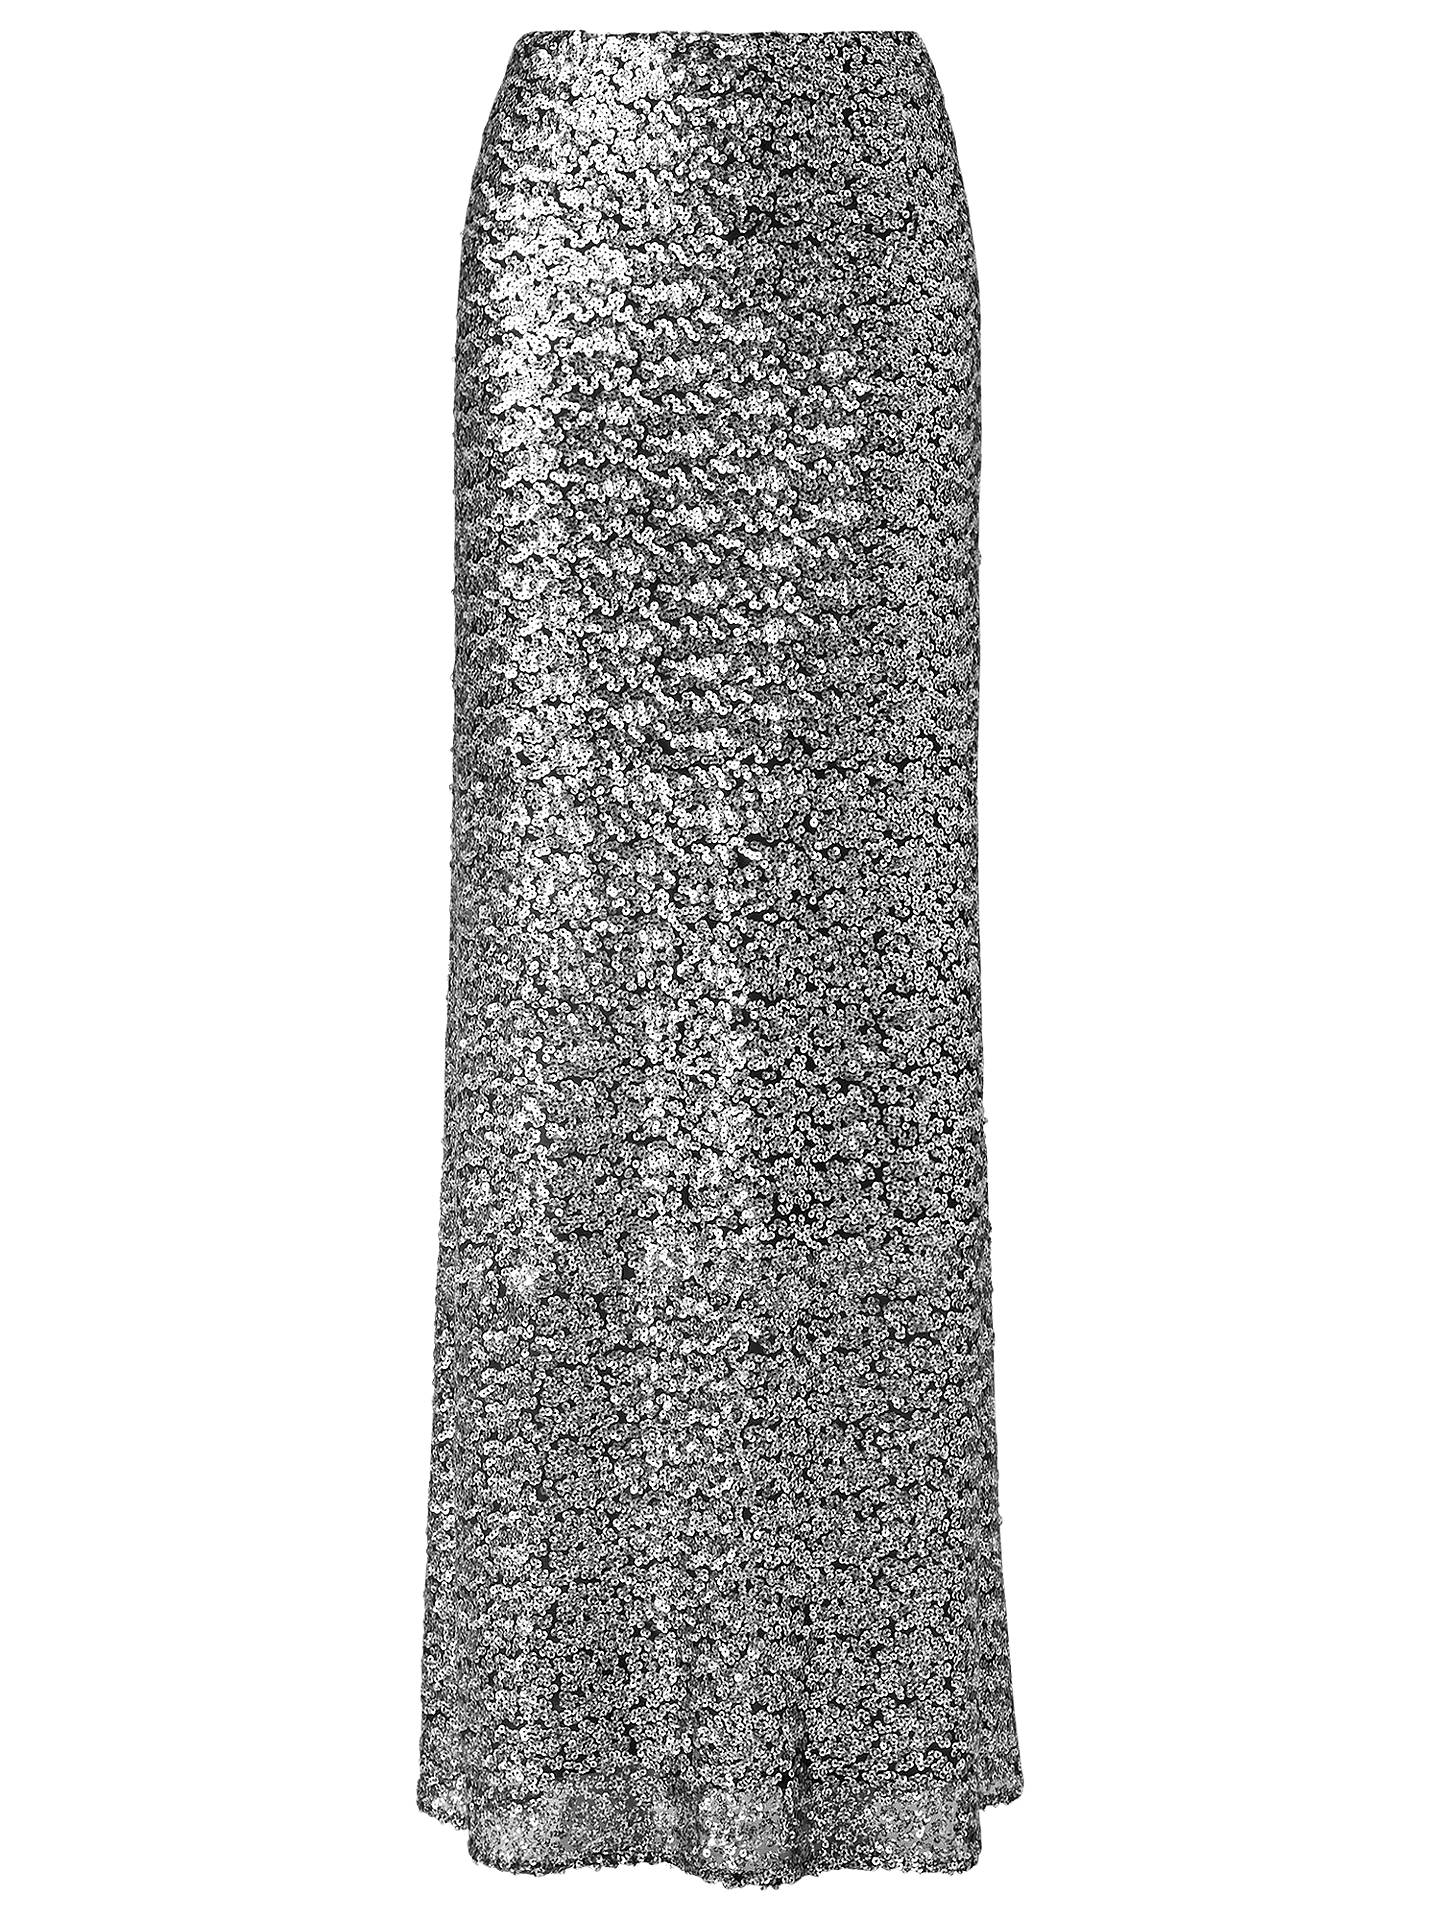 9dcbc27f38 Buy Phase Eight Shimmer Sequin Maxi Skirt, Silver, 8 Online at  johnlewis.com ...